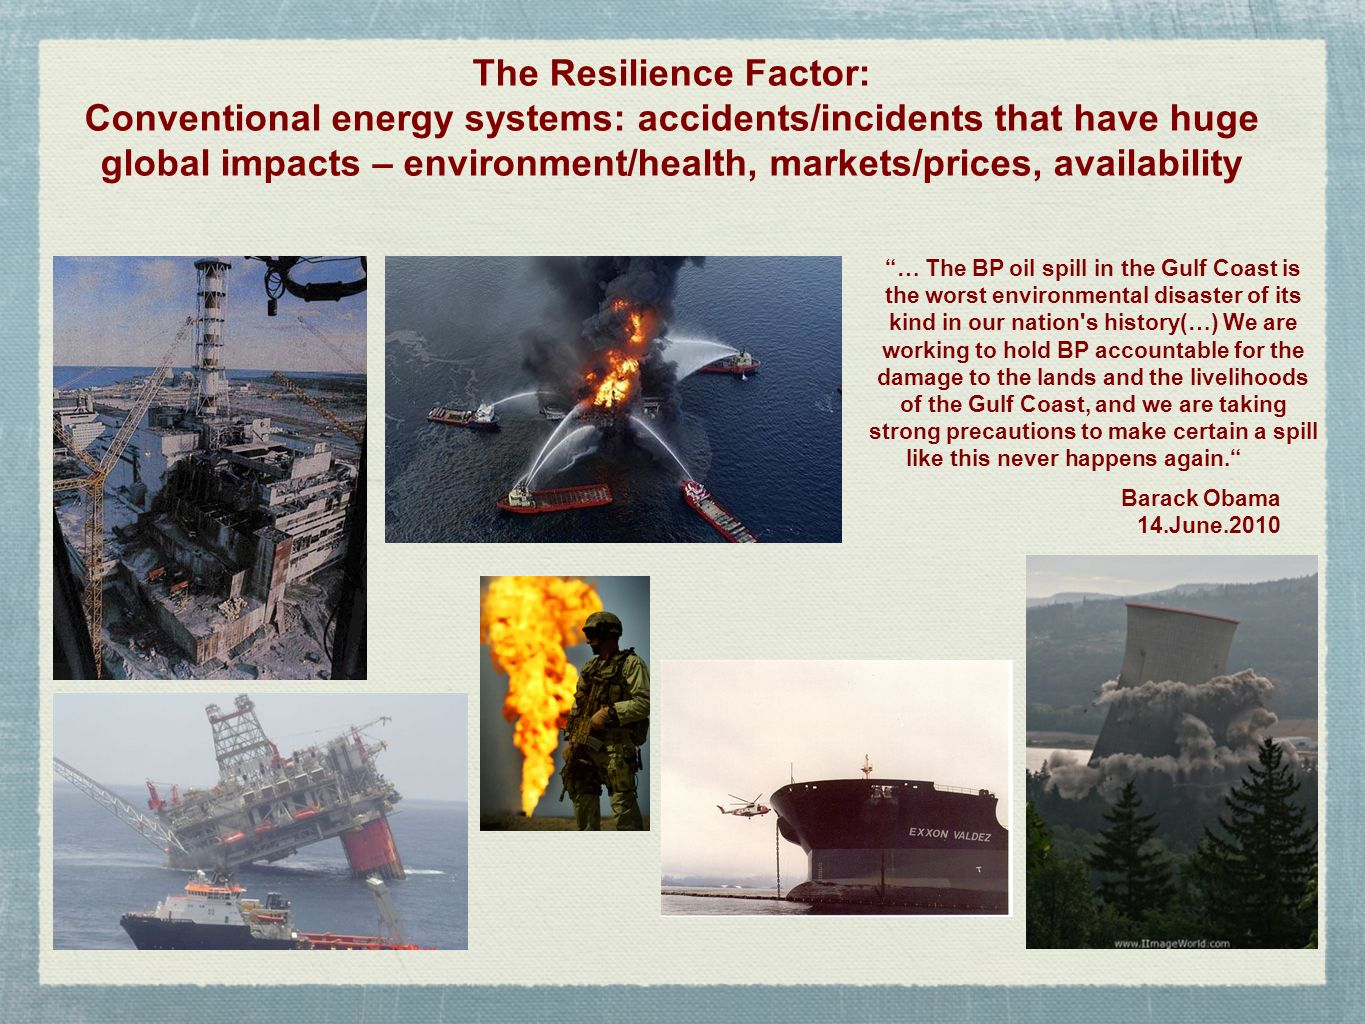 The Resilience Factor: Conventional energy systems: accidents/incidents that have huge global impacts – environment/health, markets/prices, availabili